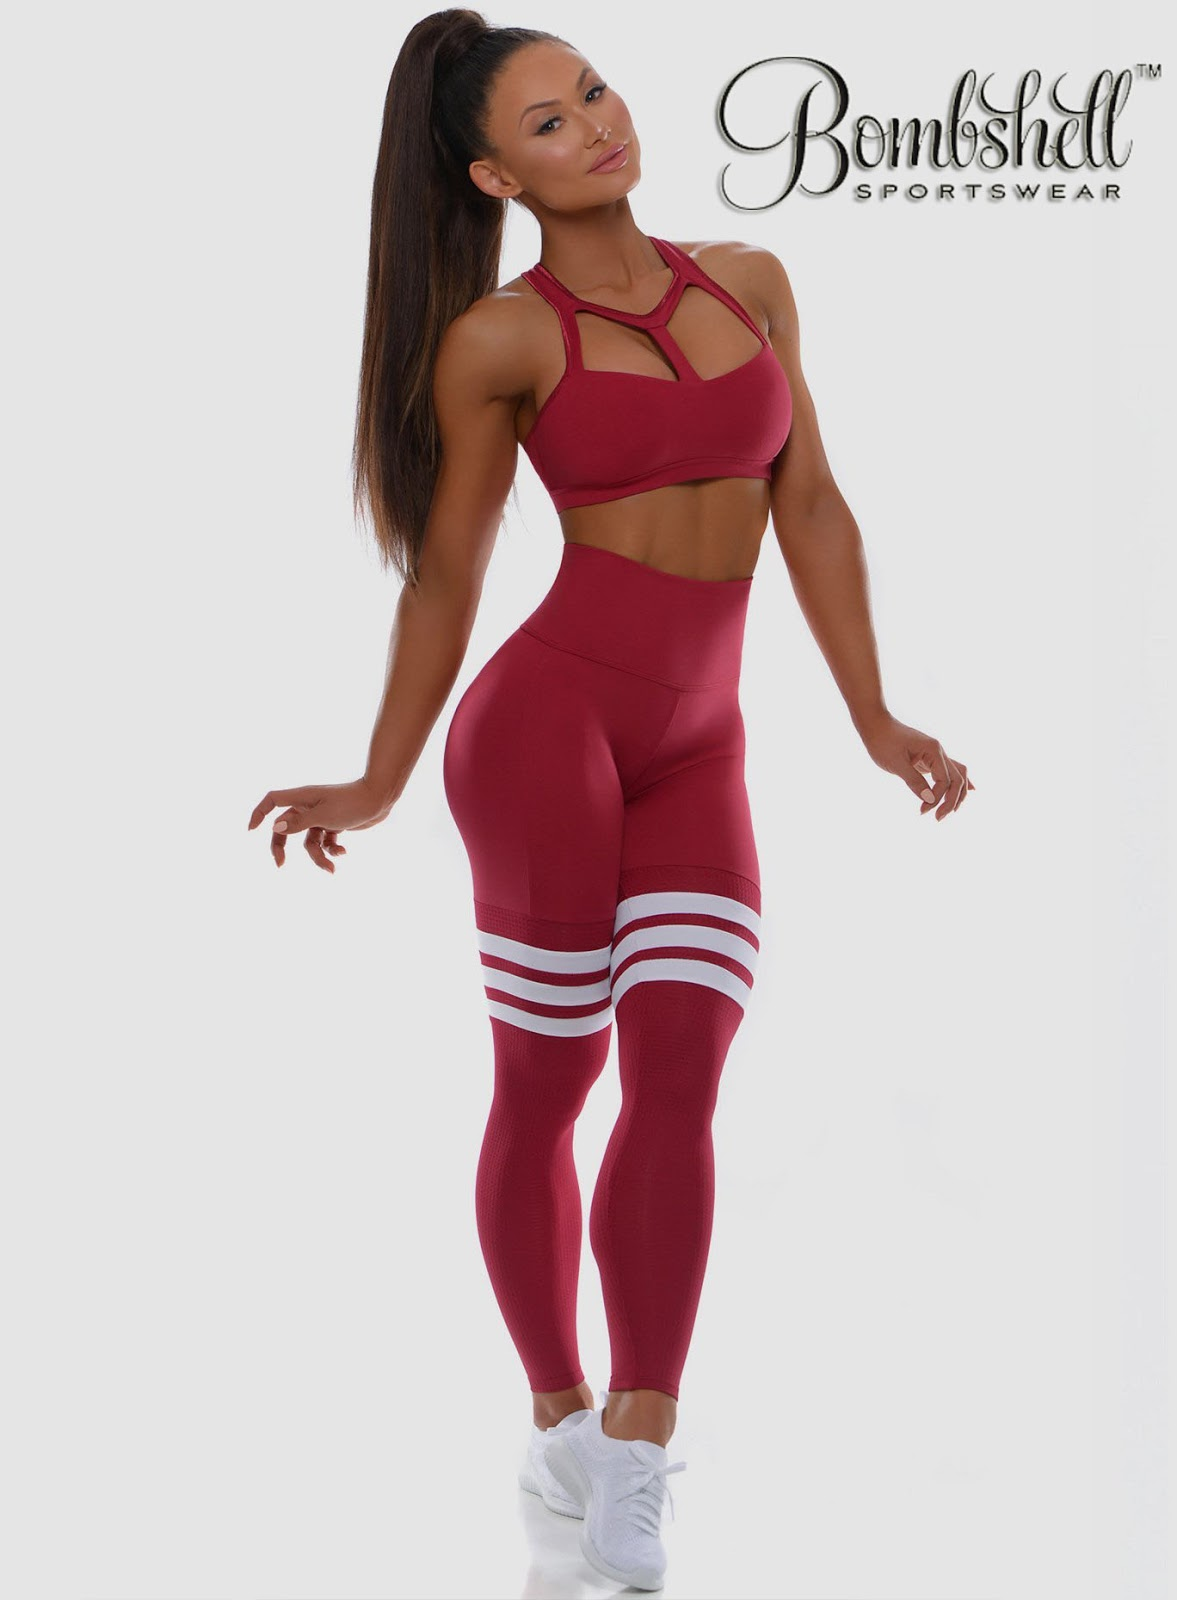 02888135c8 A woman can look cute with Bombshell's new Cute Leggings. Best quality  fabric used, women feel comfortable at the time of exercise.